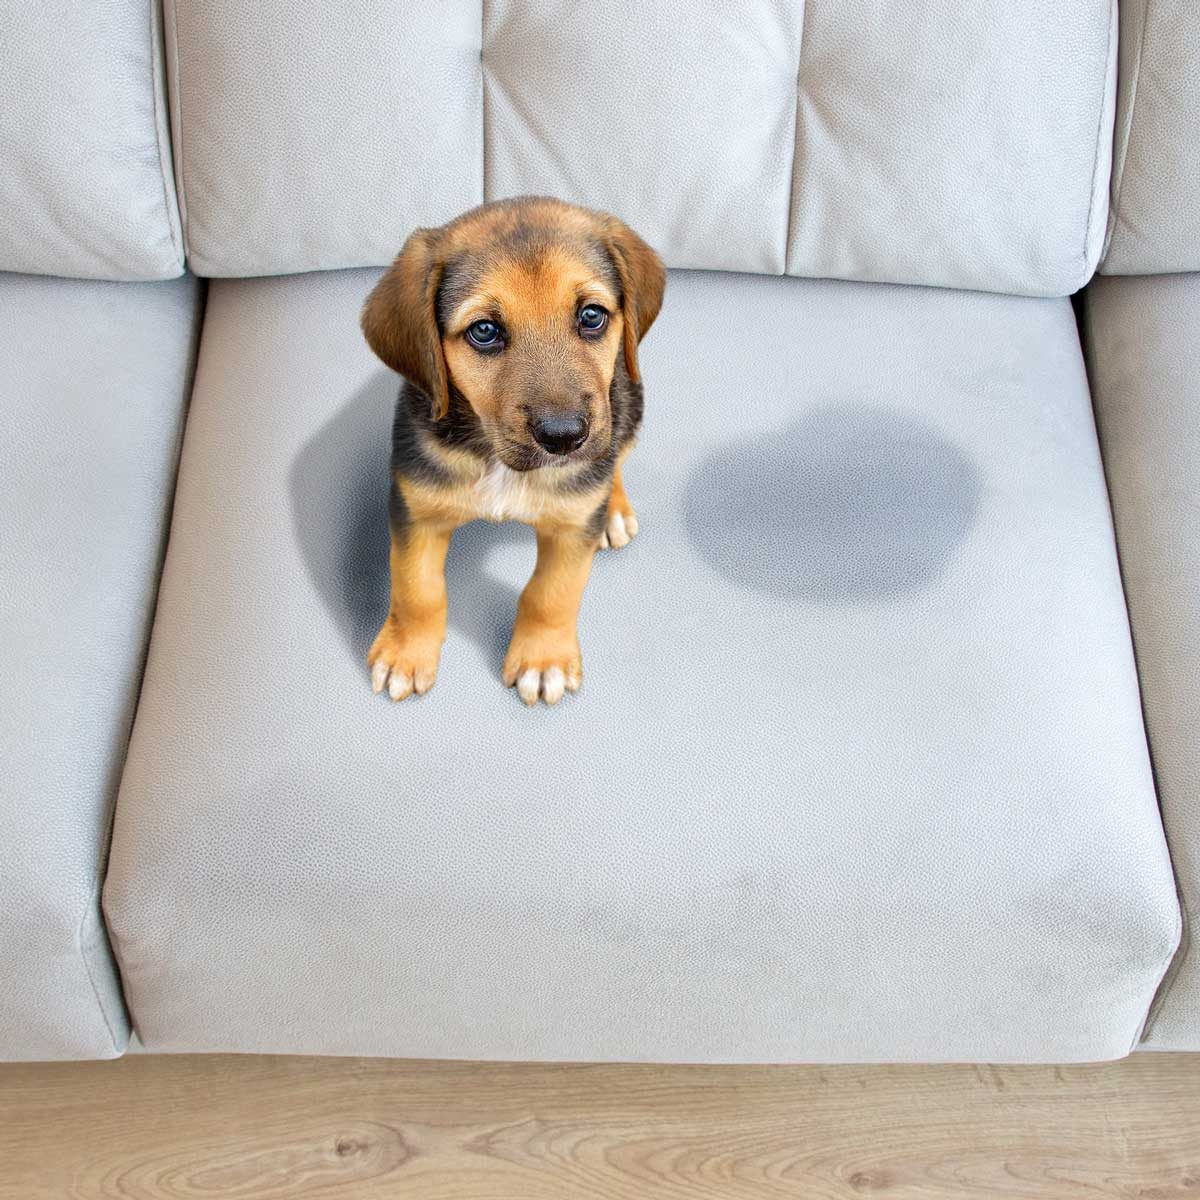 Dog Accident On Couch Gettyimages 1132148411